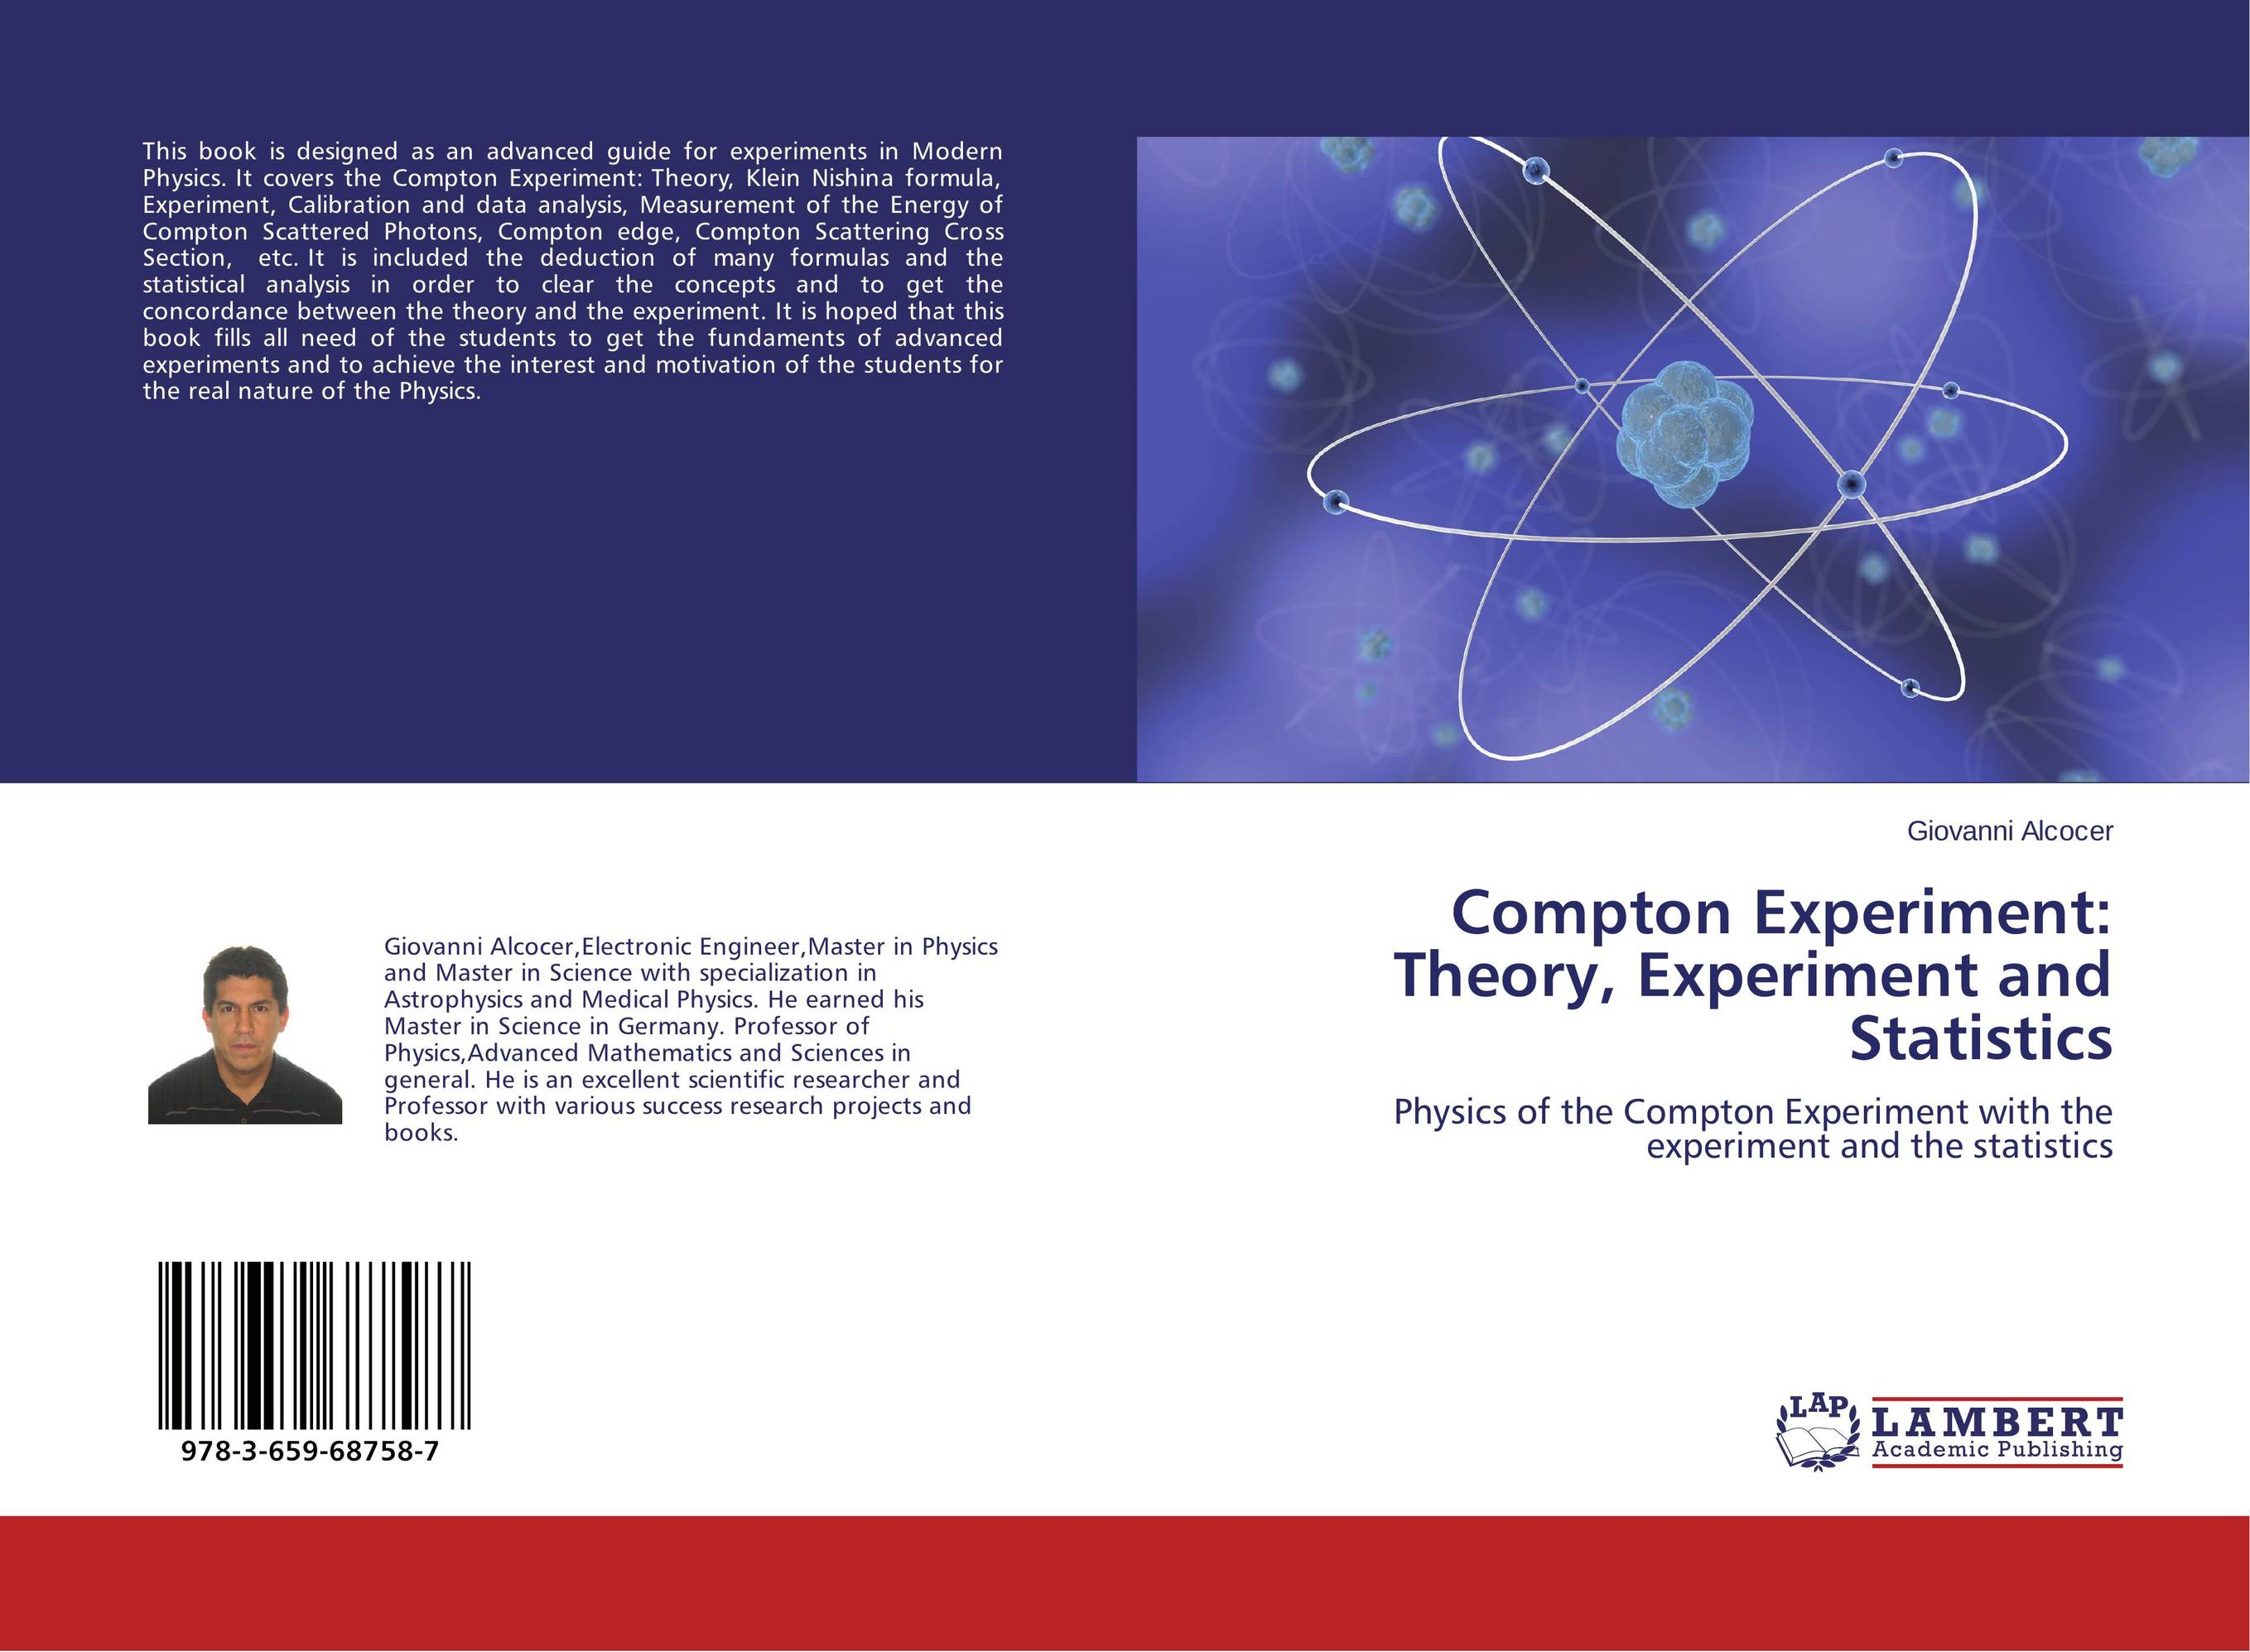 Compton Experiment: Theory, Experiment and Statistics donald smith j bond math the theory behind the formulas